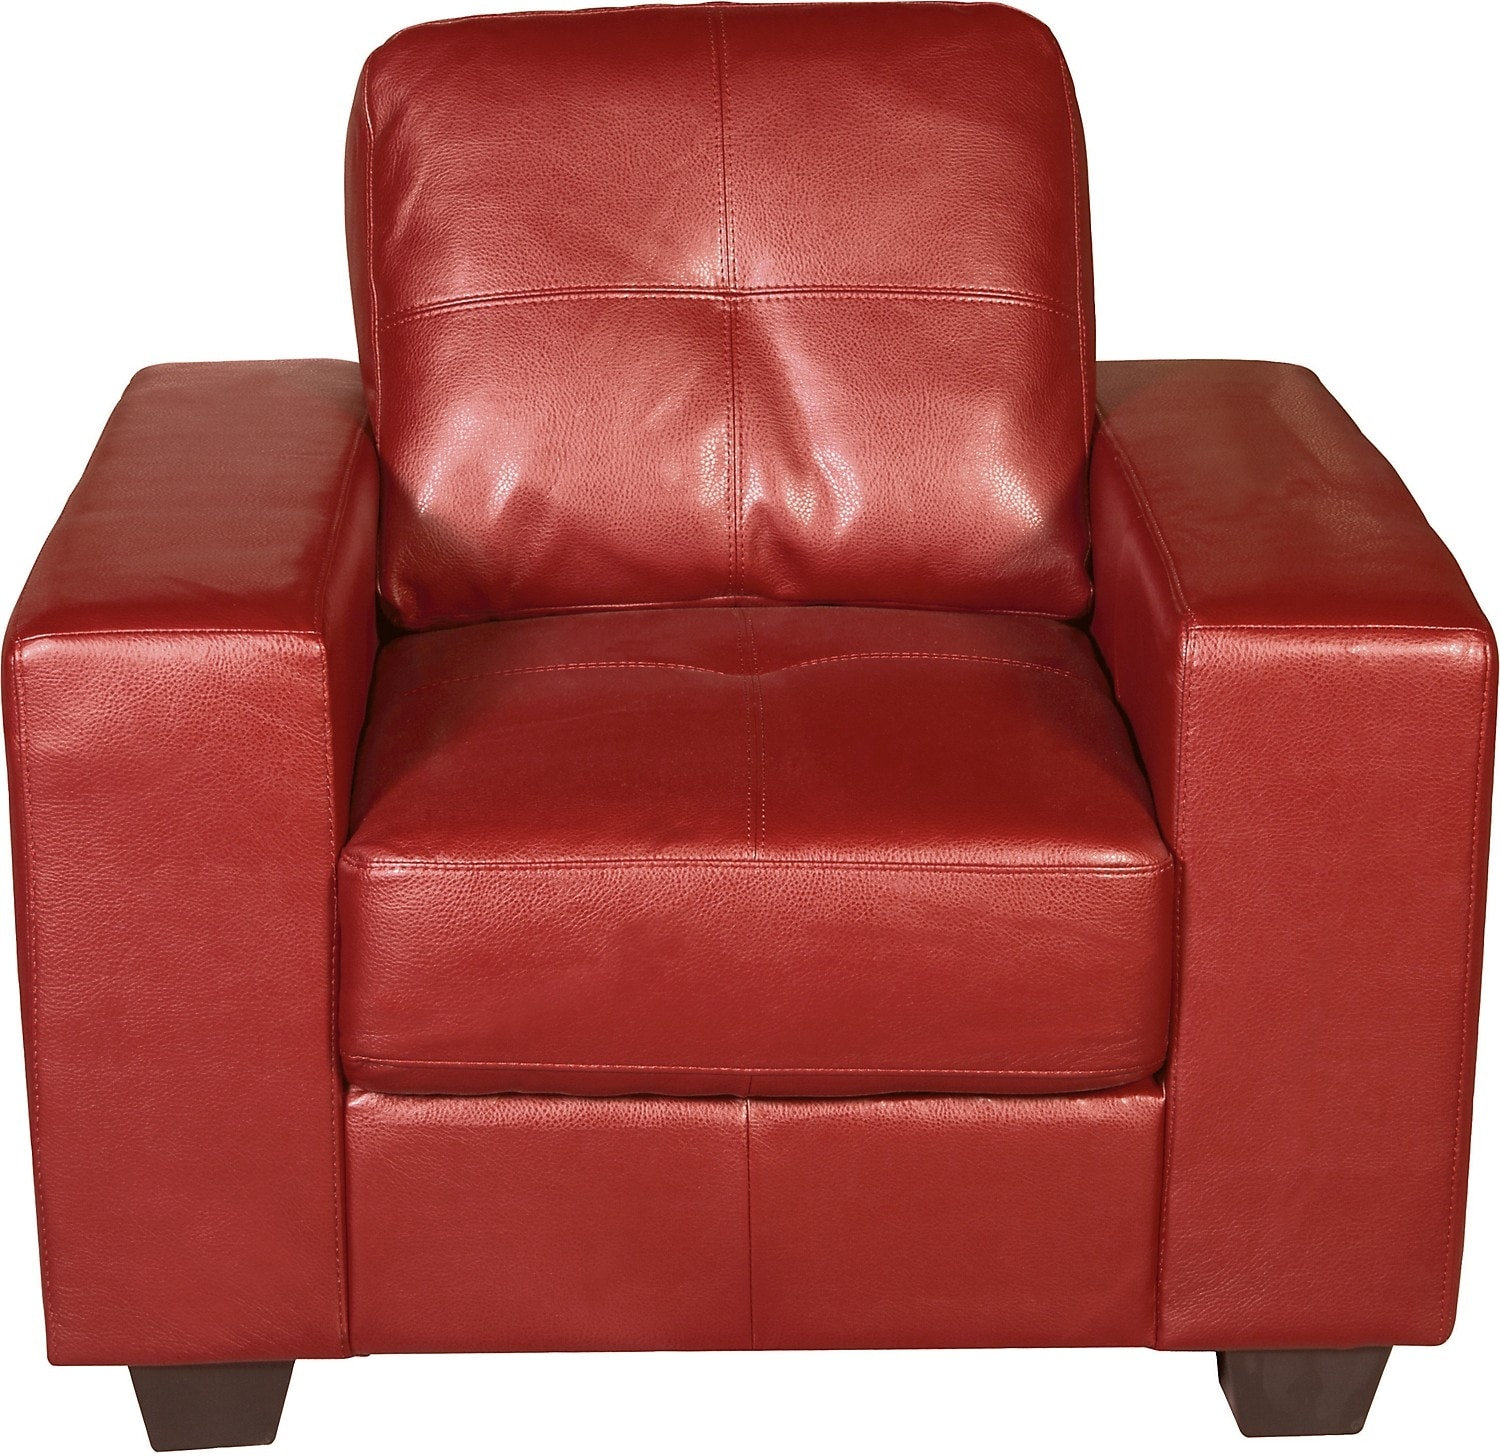 Living Room Furniture - Costa Red Bonded Leather Chair